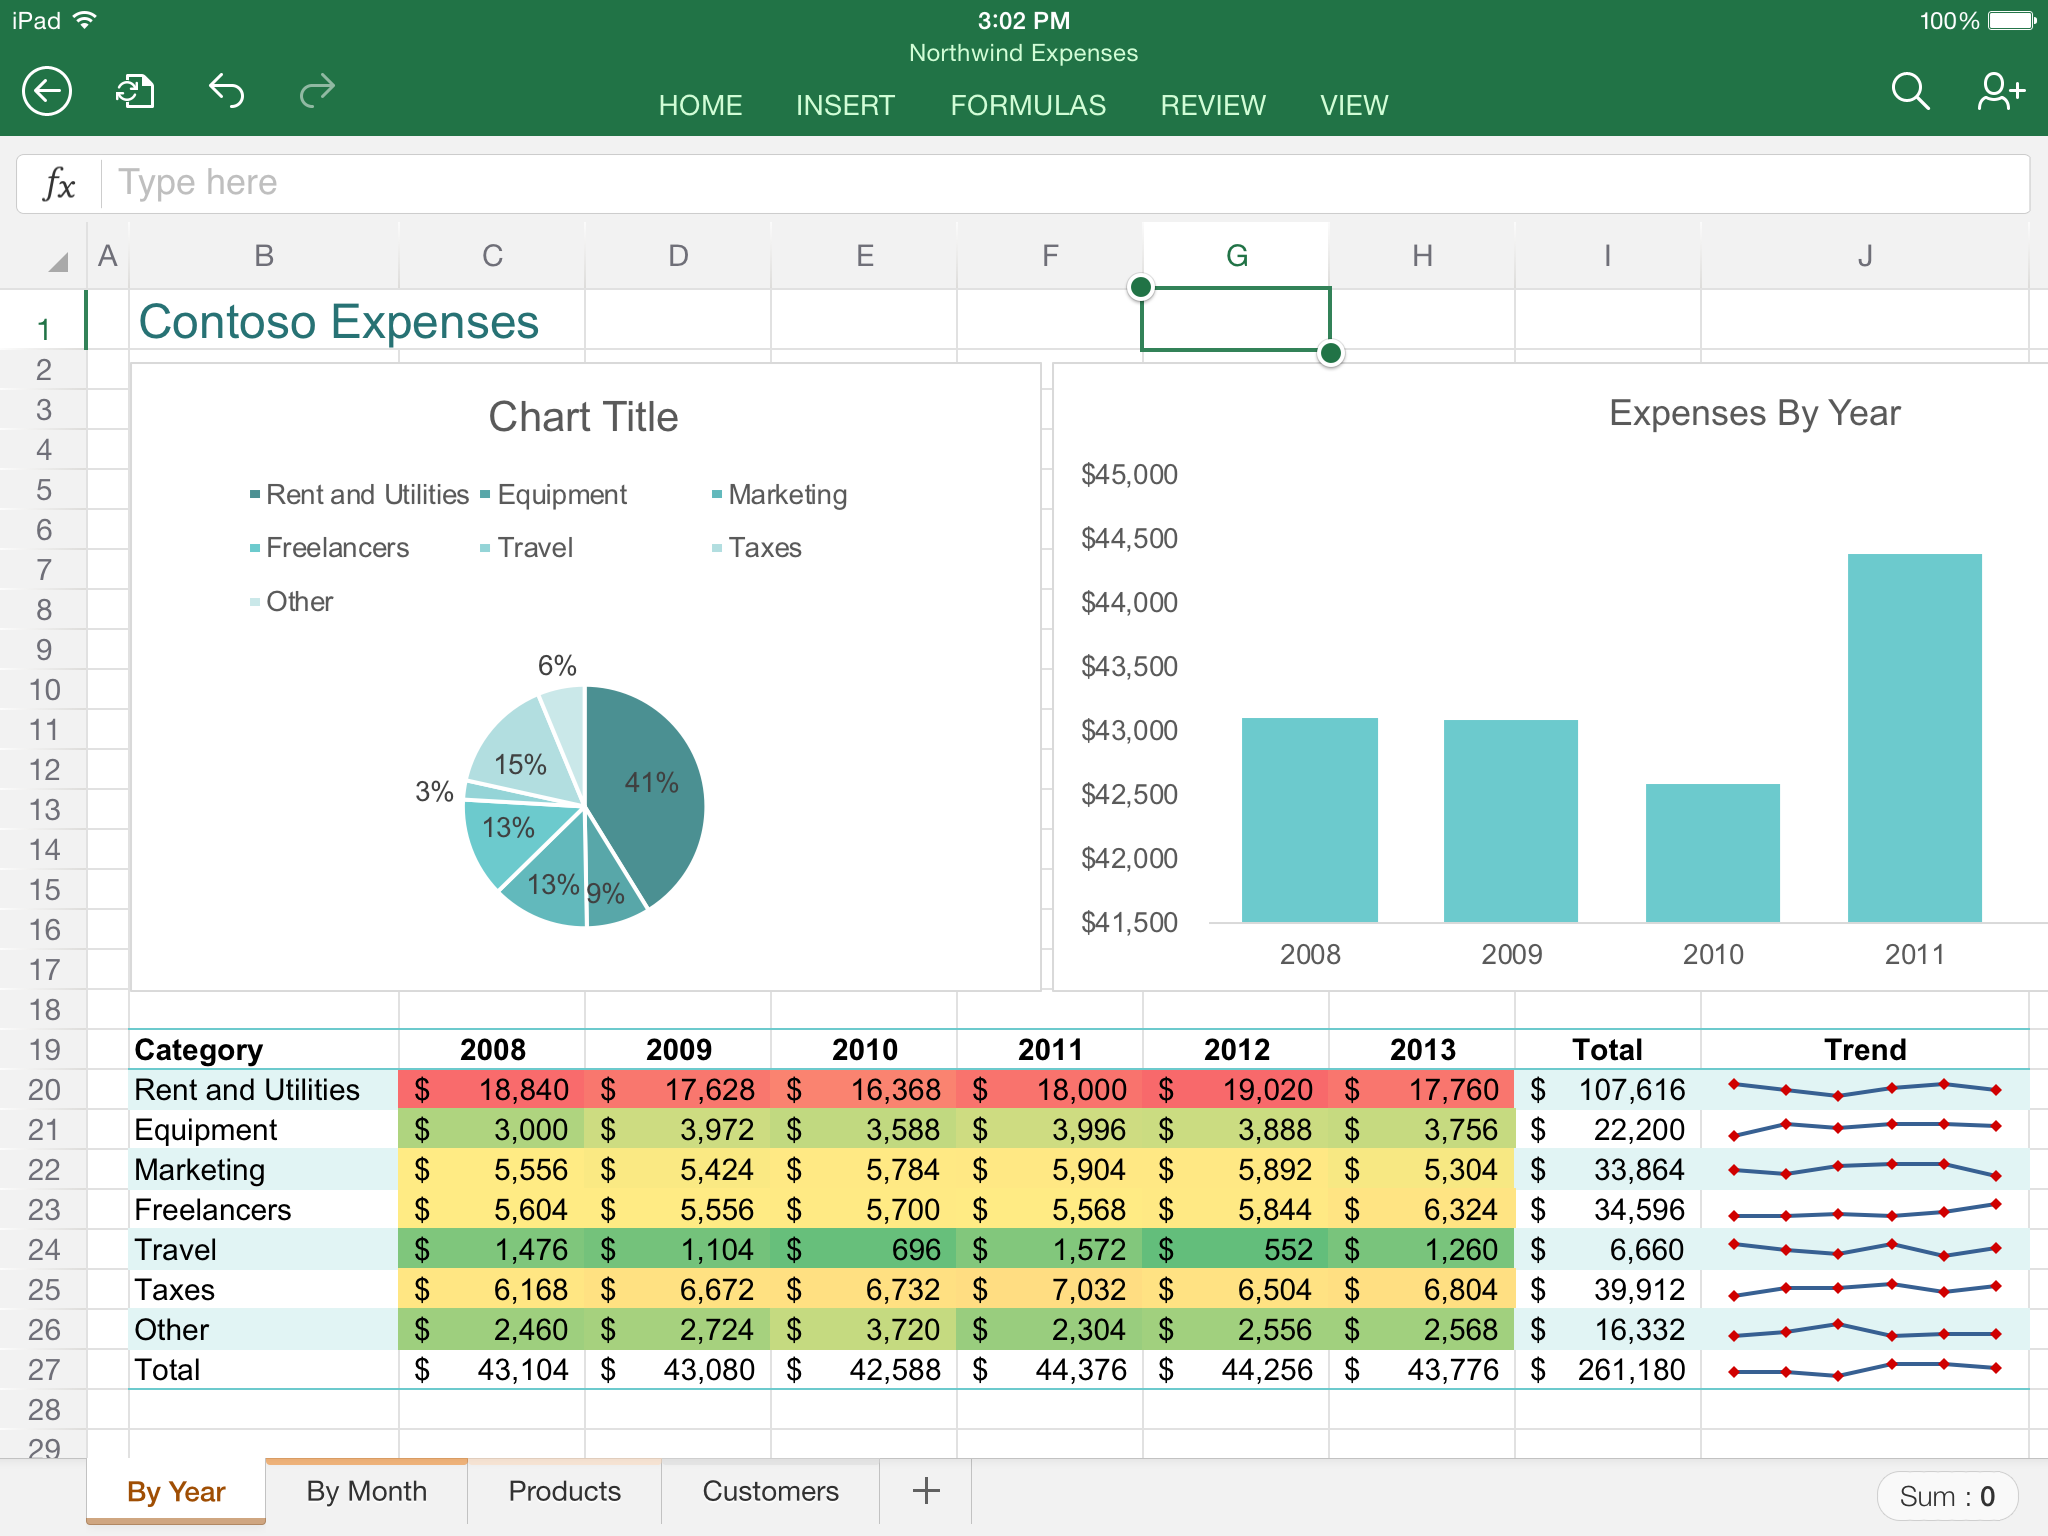 Ediblewildsus  Splendid App Highlight Excel  Mobile Digital Now With Licious Excel In Action With Charming If Statements In Excel  Also Sample Project Plan Excel In Addition Microsoft Excel Equations And Trend Formula In Excel As Well As Excel Discounted Cash Flow Additionally Google Excel Formulas From Youstonybrookedu With Ediblewildsus  Licious App Highlight Excel  Mobile Digital Now With Charming Excel In Action And Splendid If Statements In Excel  Also Sample Project Plan Excel In Addition Microsoft Excel Equations From Youstonybrookedu